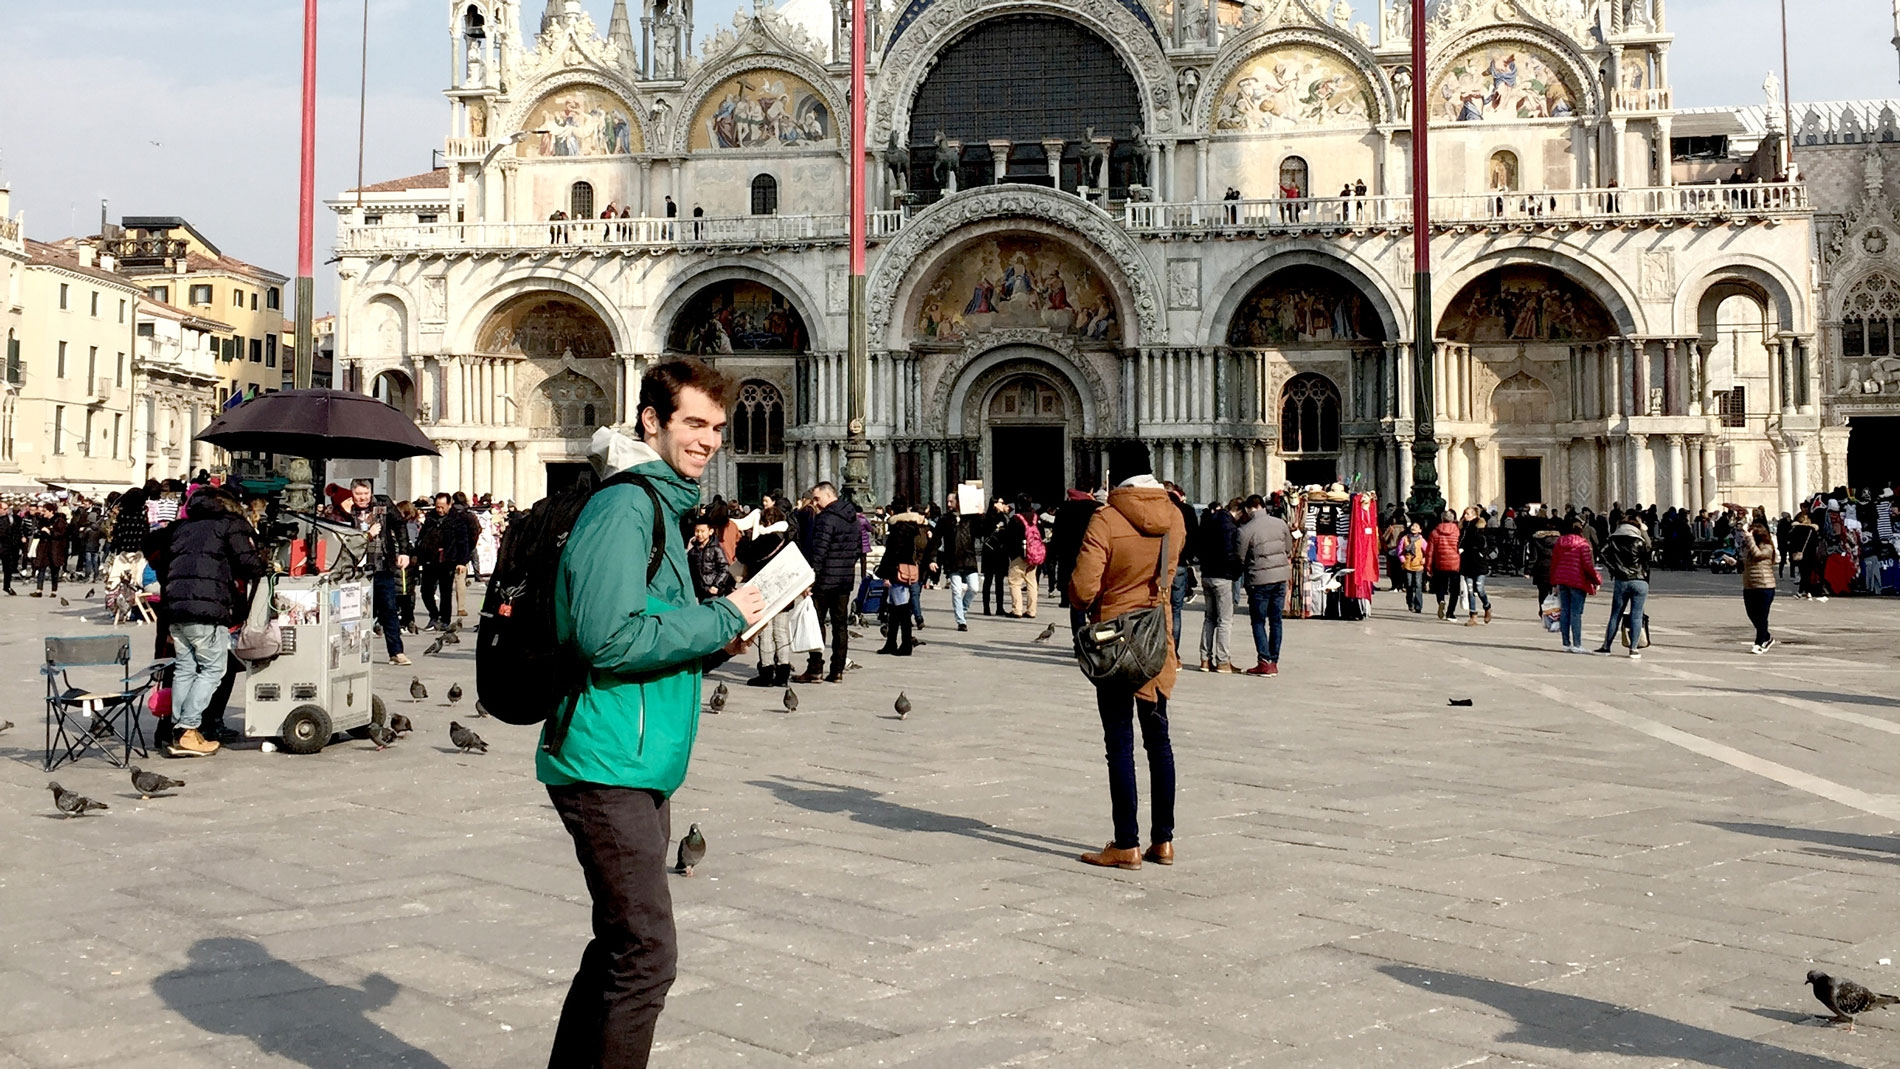 Juan visiting Piazza San Marco on his second day in Venice